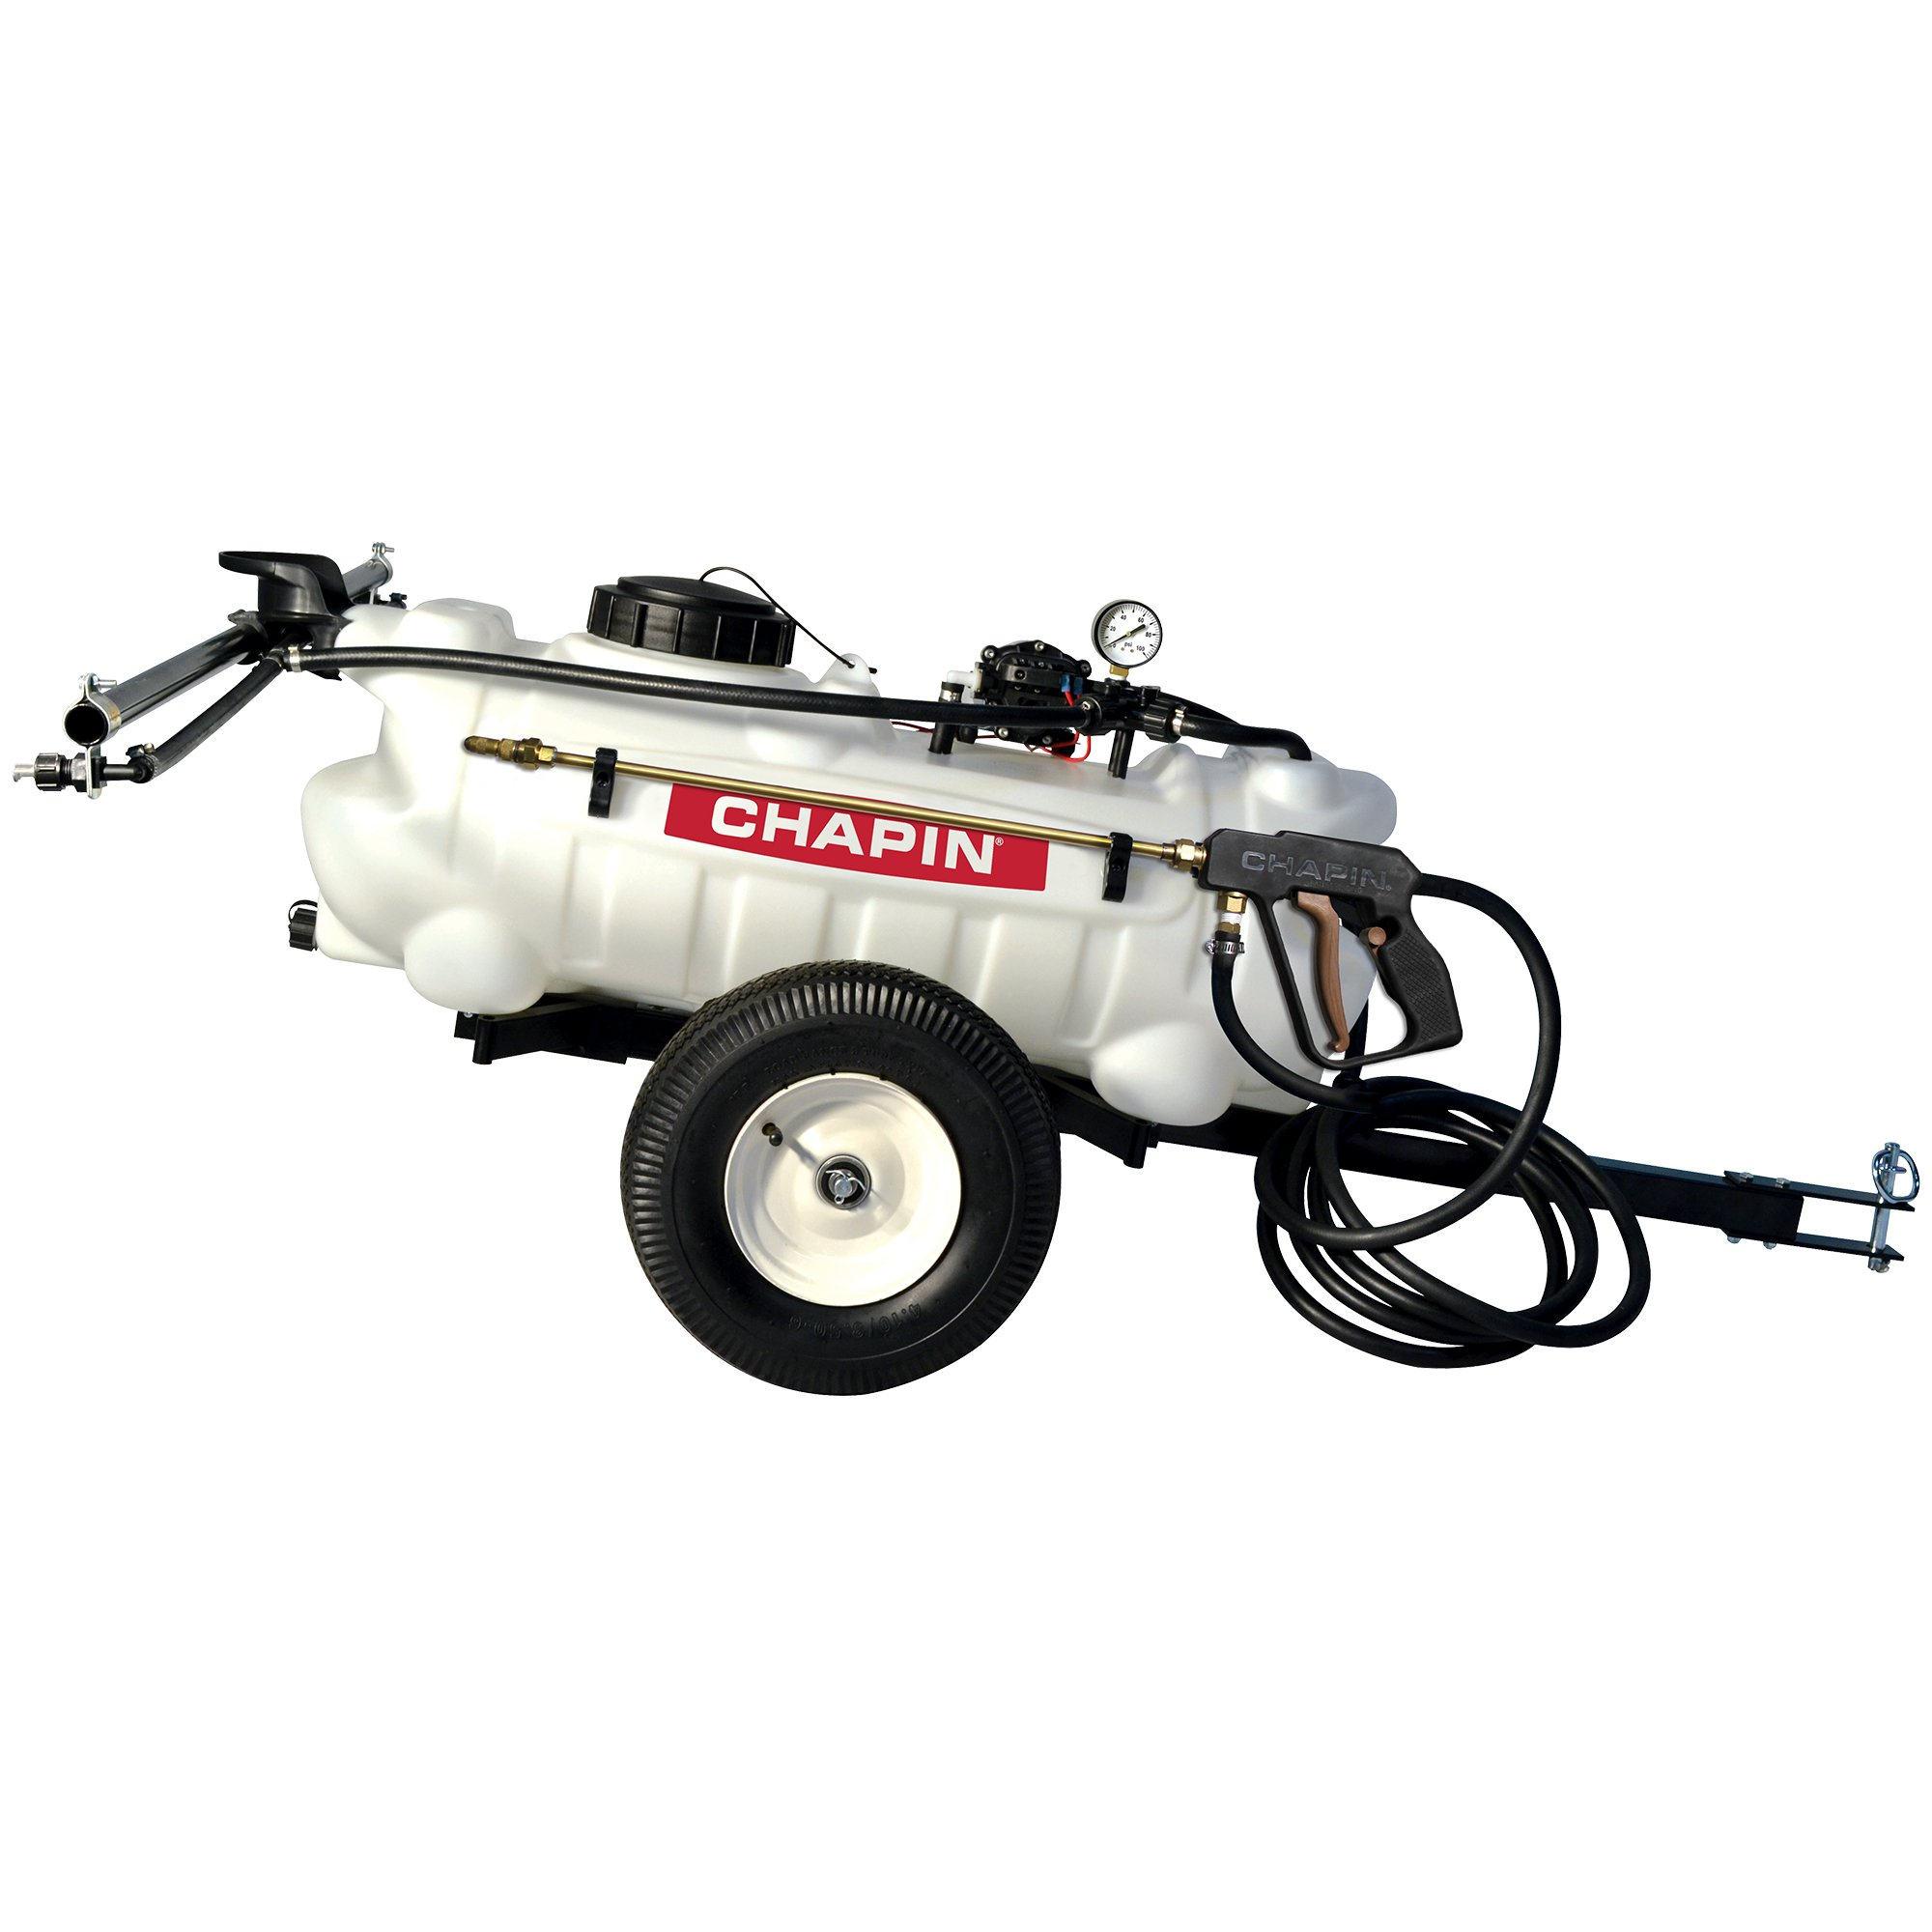 Chapin 97600 Tow Dripless Fertilizer, Herbicide and Pesticide Sprayer